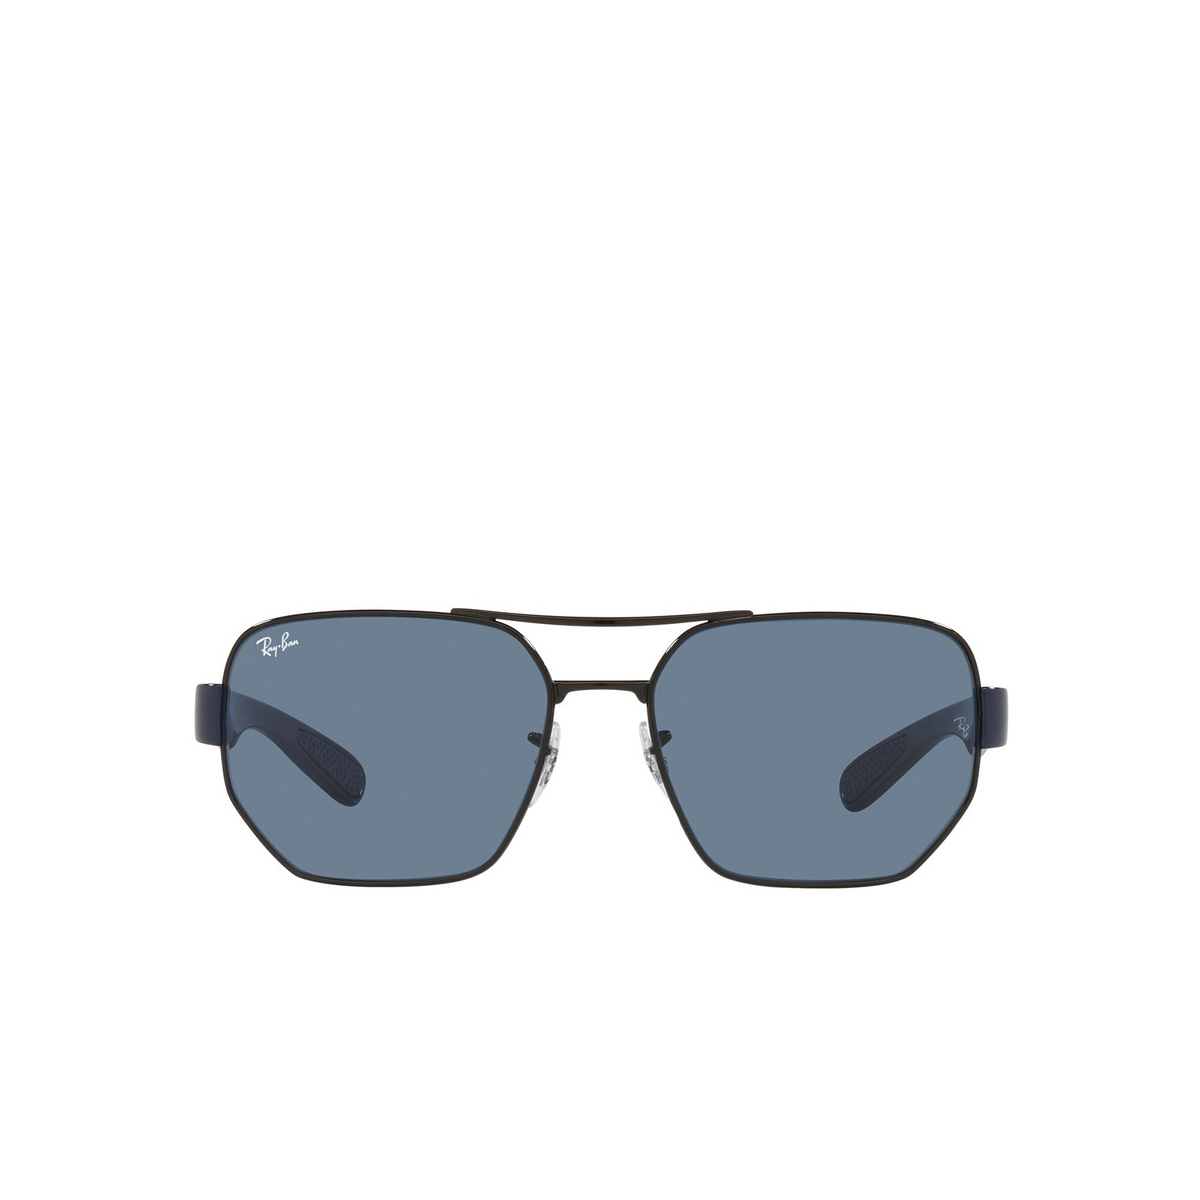 Ray-Ban® Irregular Sunglasses: RB3672 color Black 002/80 - front view.